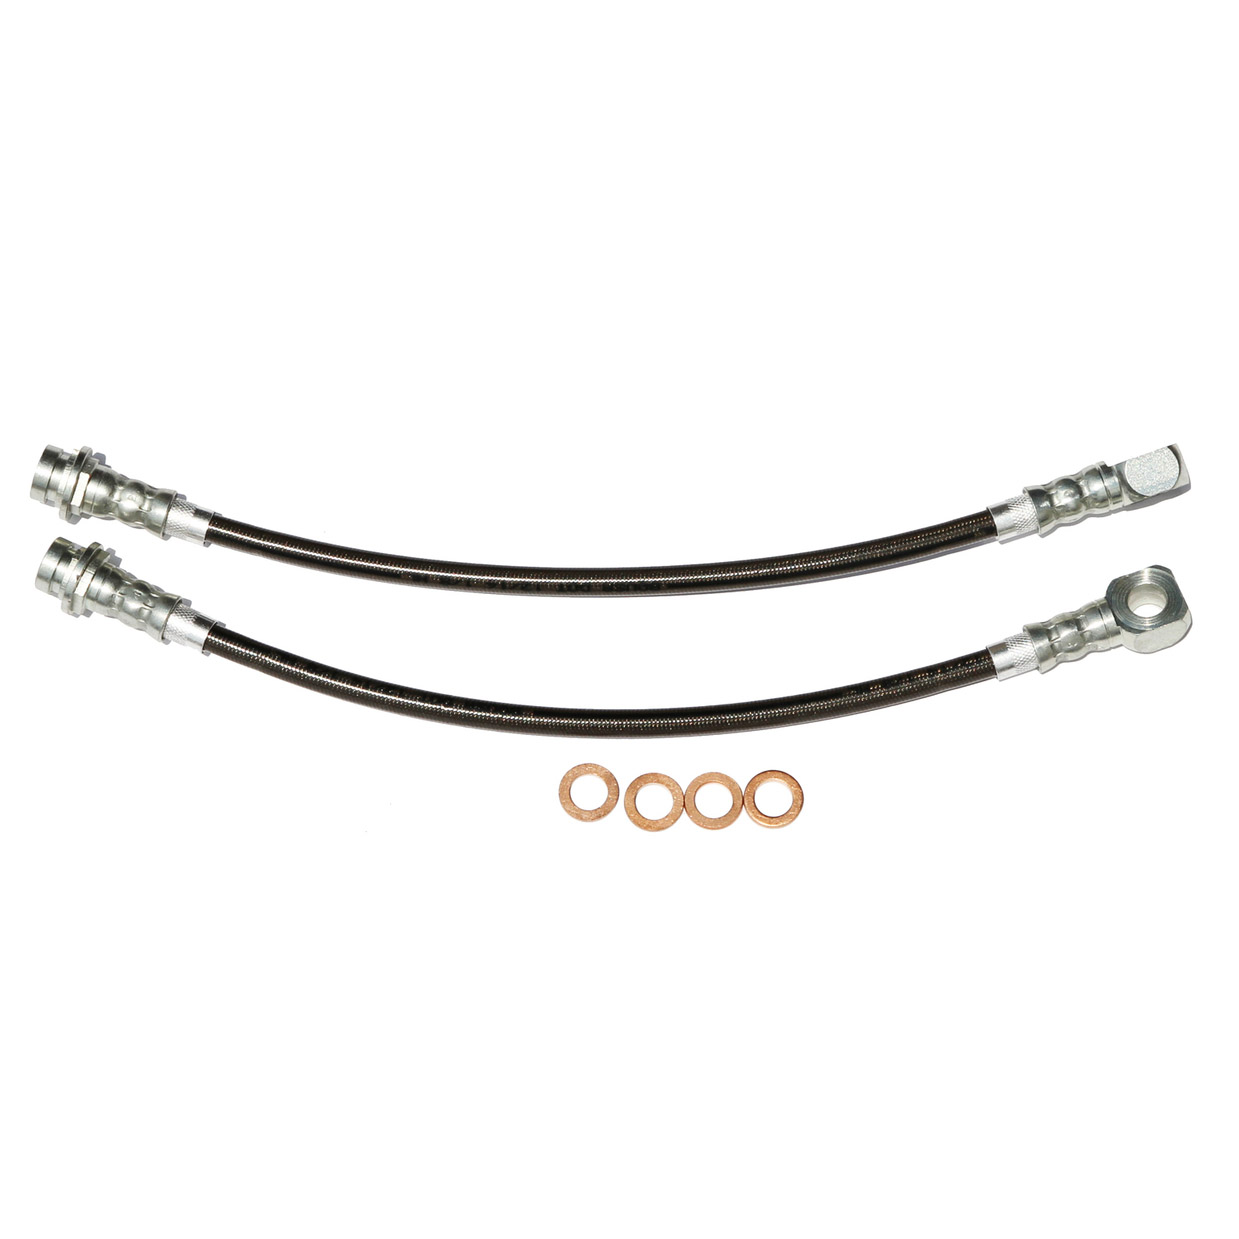 Camaro Firebird Front Stainless Steel Hose Kit